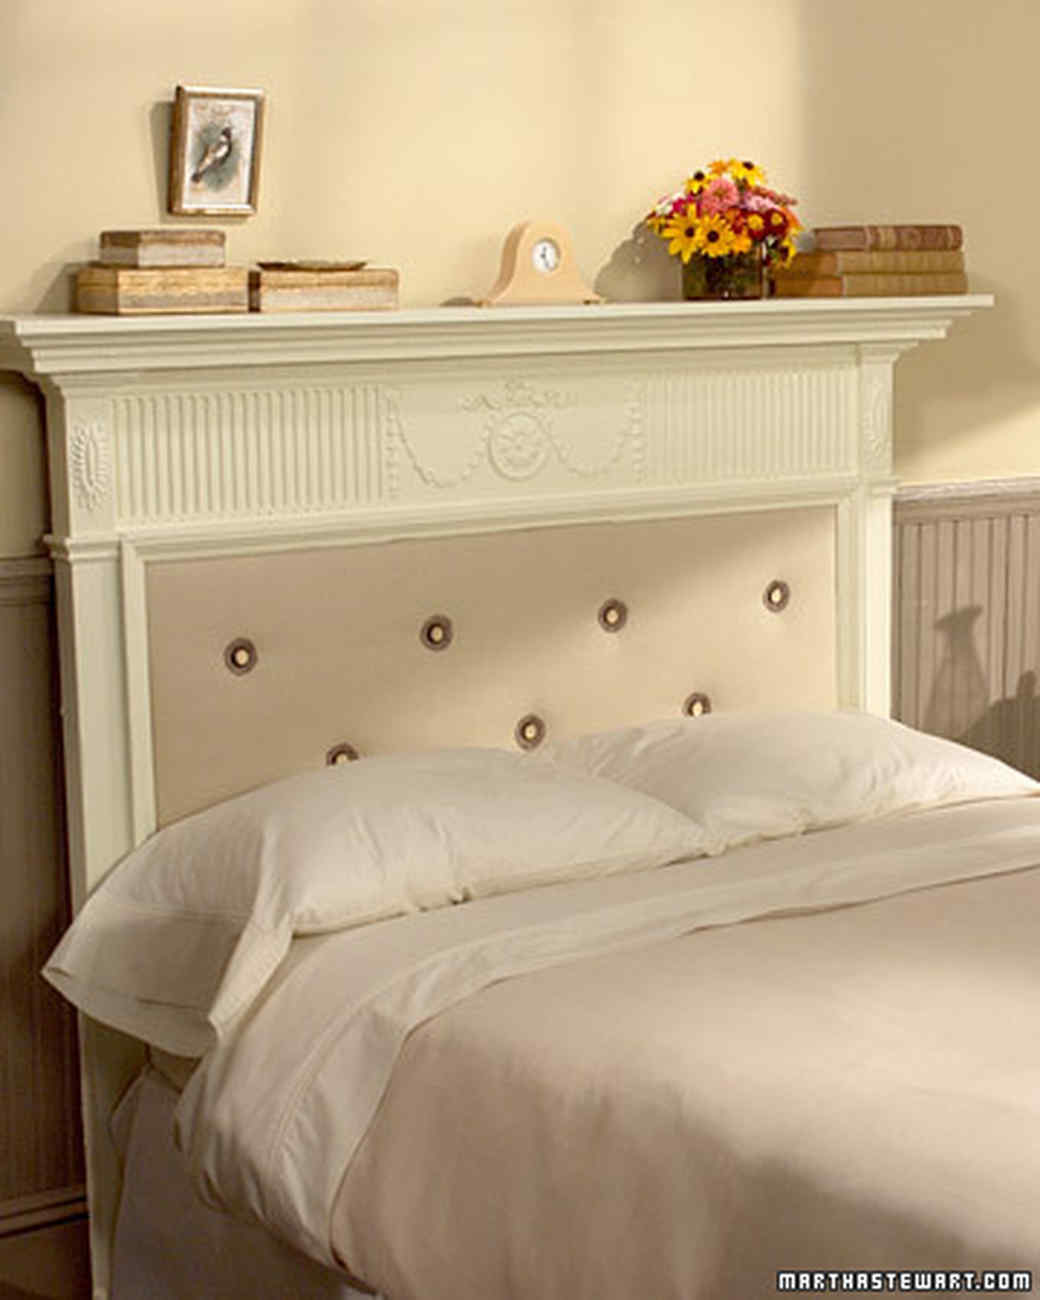 Single Bed Headboard Ideas 10 diy headboard ideas to give your bed a boost | martha stewart